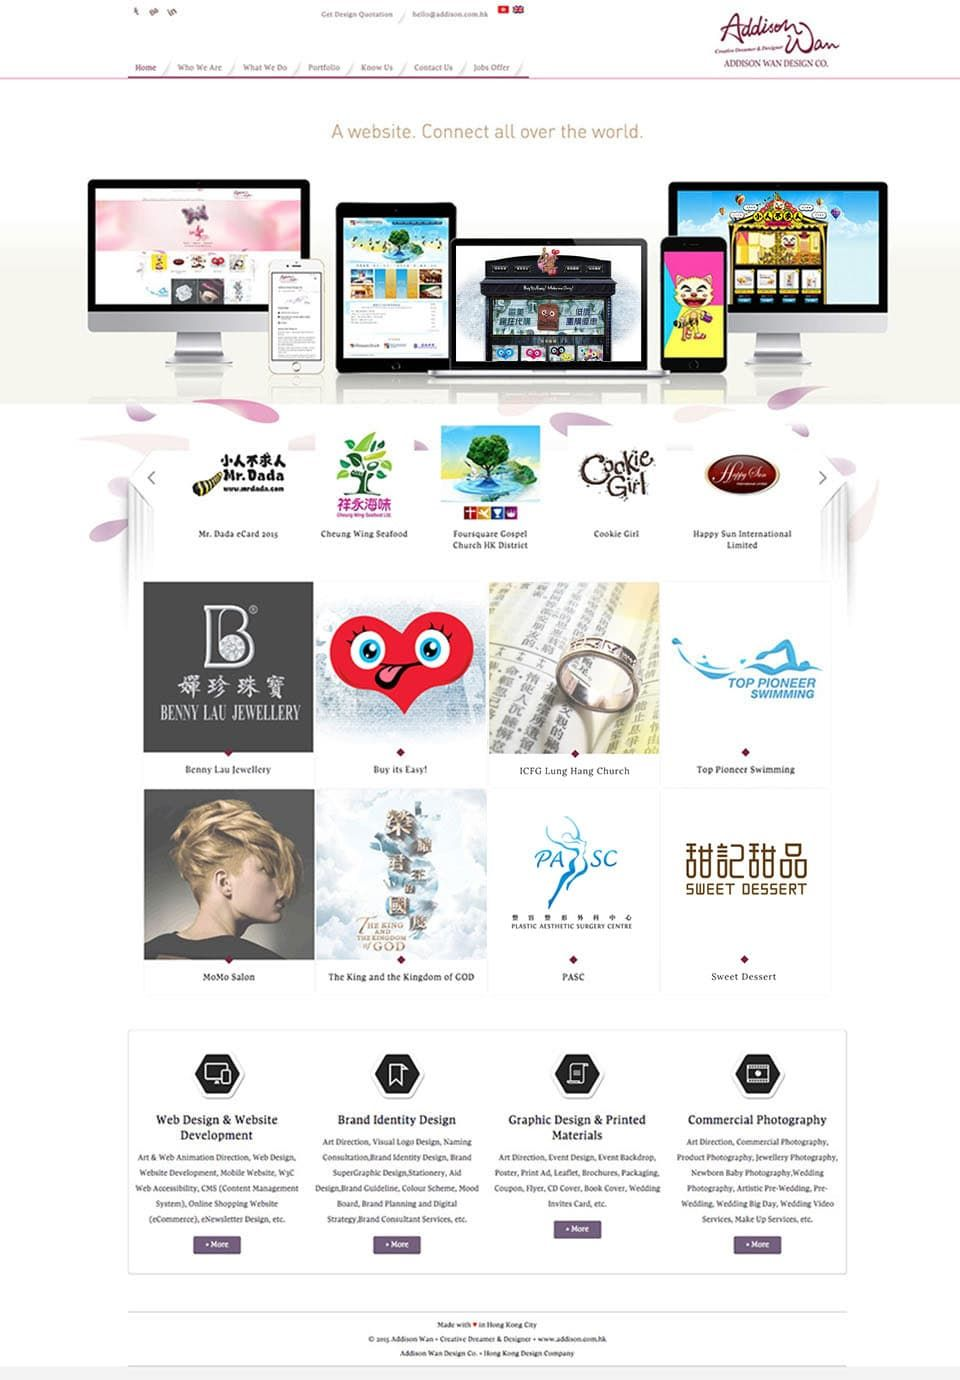 Addison Wan Design Co Is Web Design Company Located In Hong Kong Founded By Hong Kong Web Designer Addison Wan Web Design Web Design Company Website Design